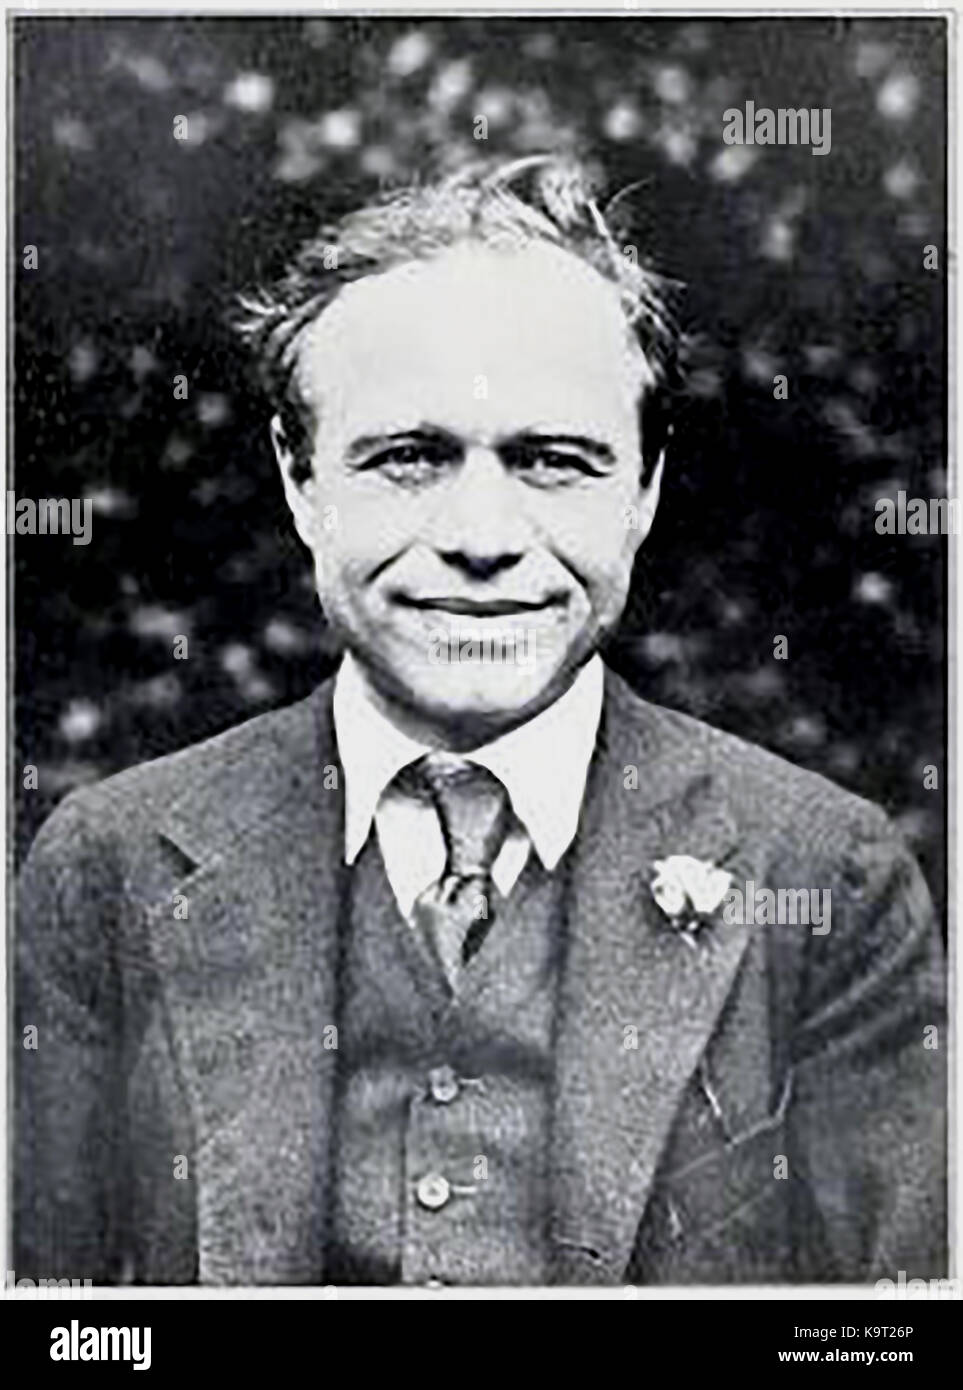 A 1928 portrait of William Maxwell Beaverbrook , 1st Baron Beaverbrook (Lord Beaverbrook) - Stock Image